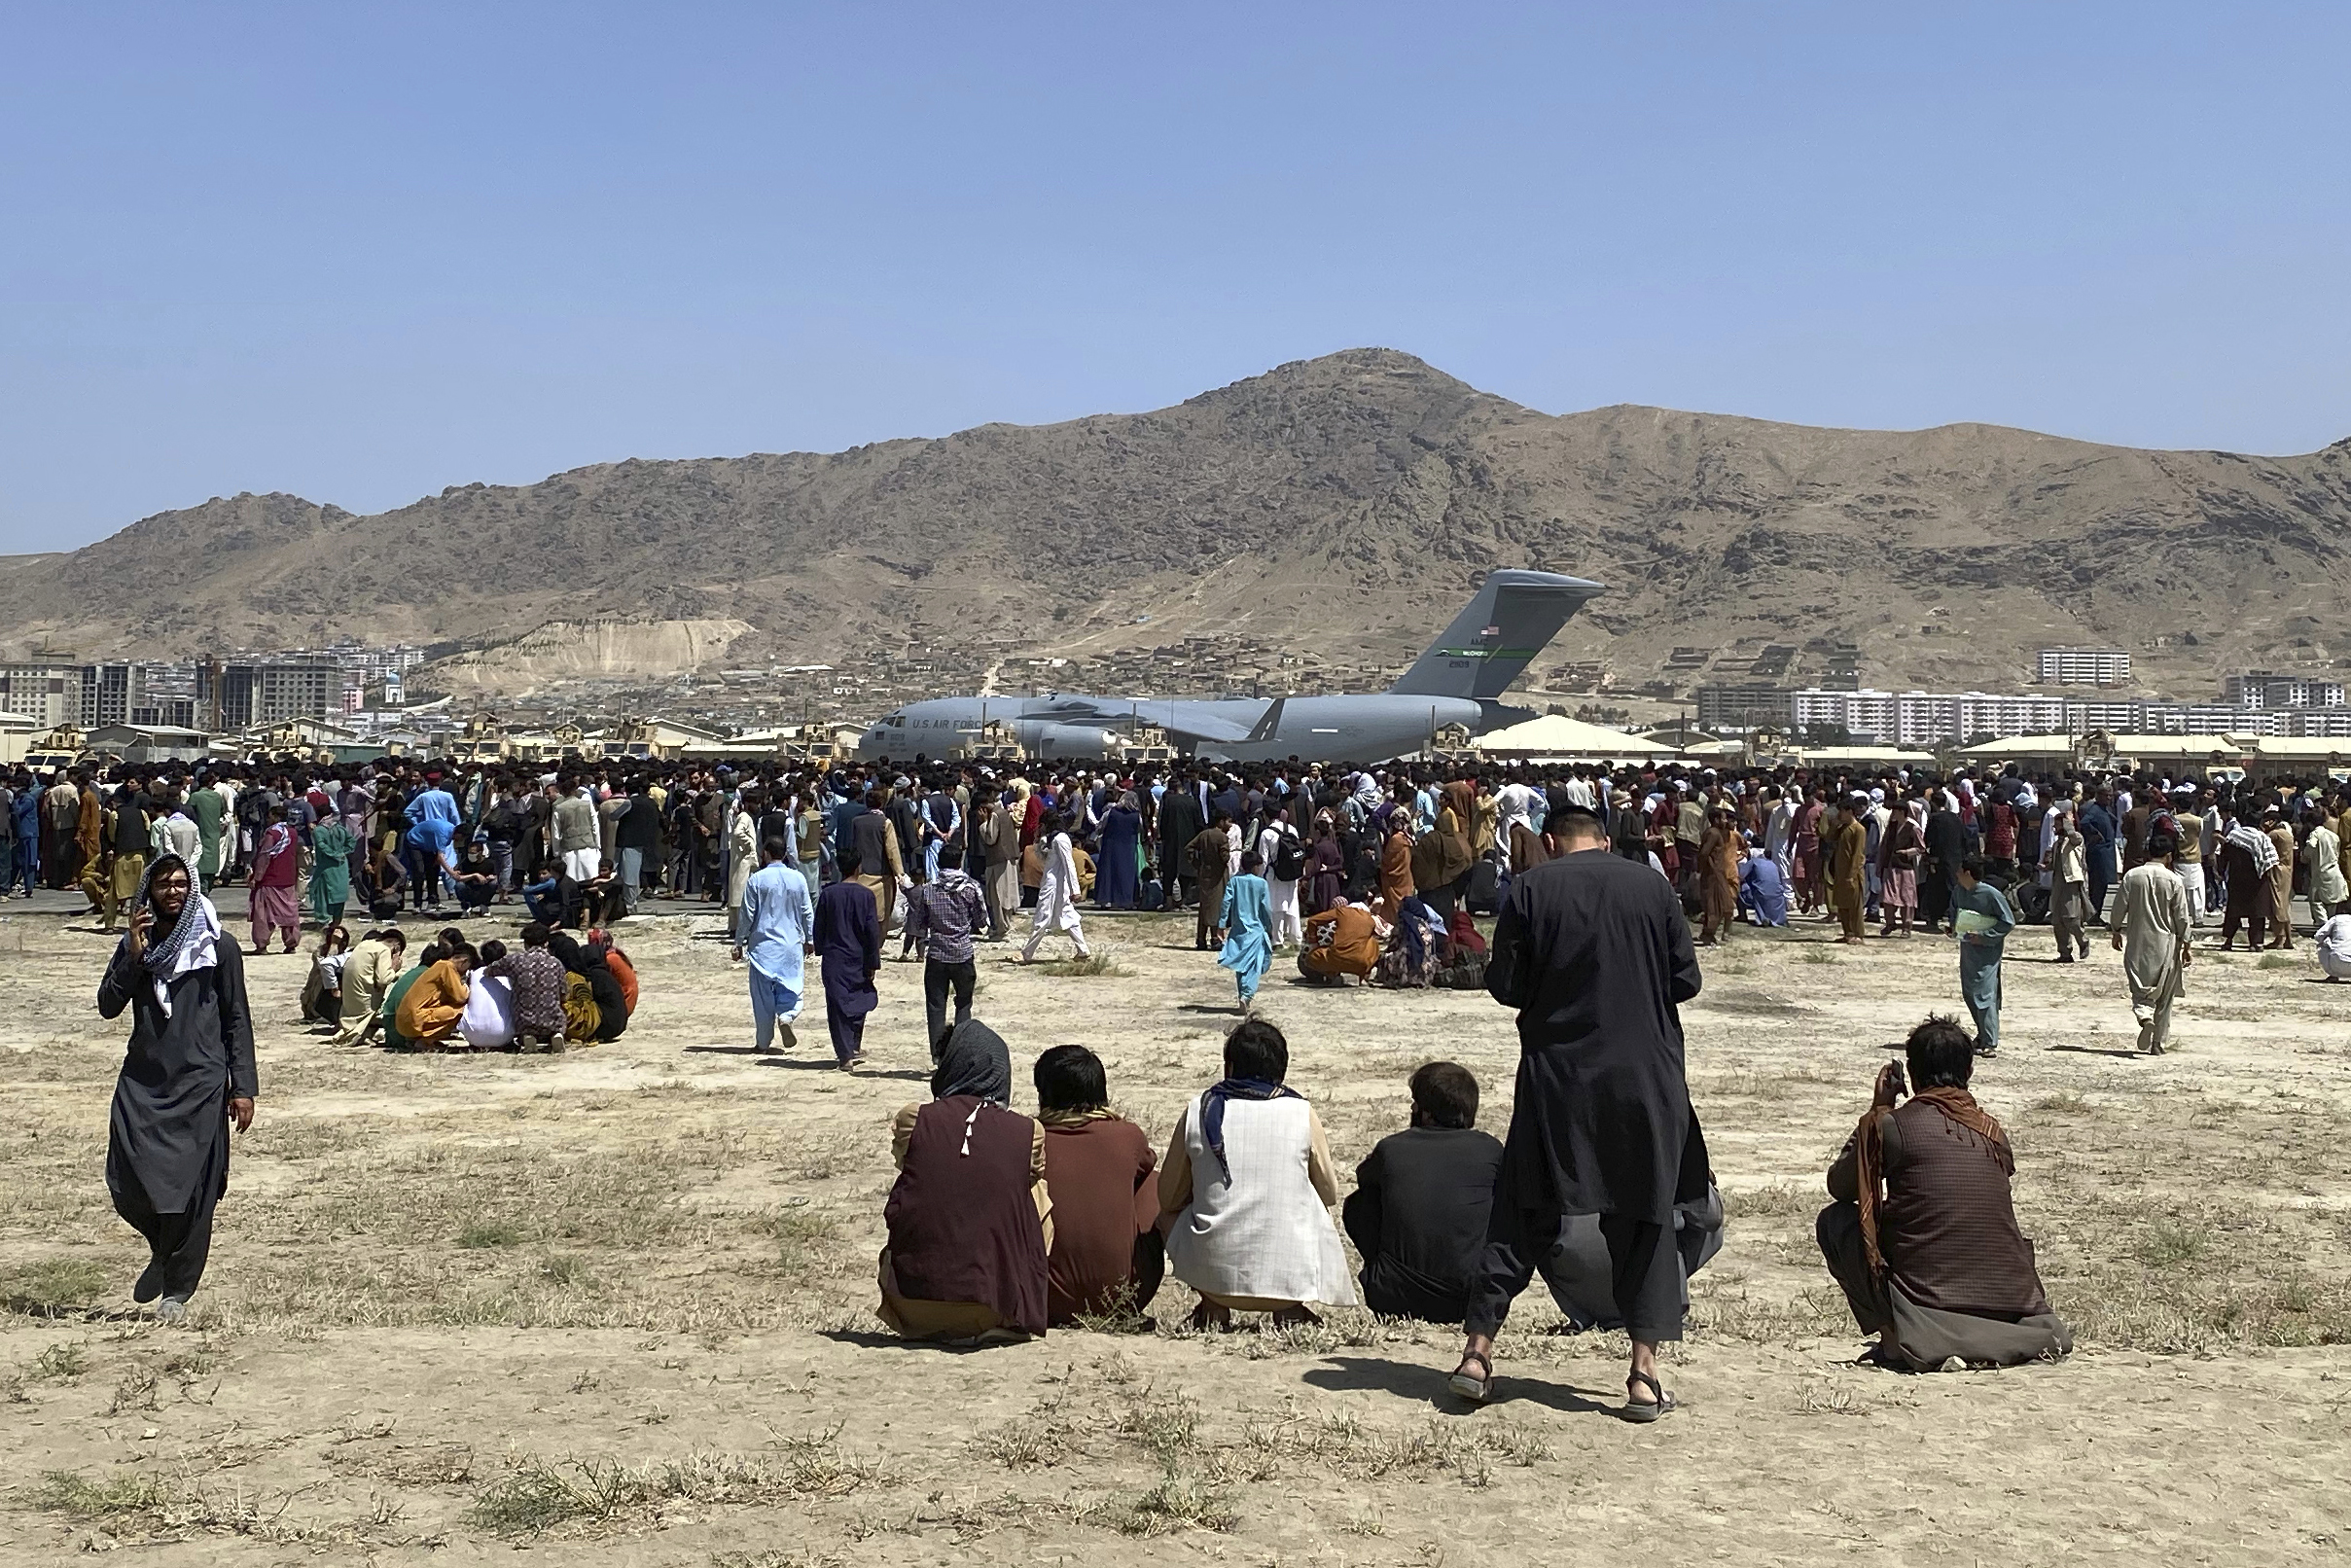 A rumor that killed Afghans in Kabul in a stampede or falling out of the plane. What's the story?